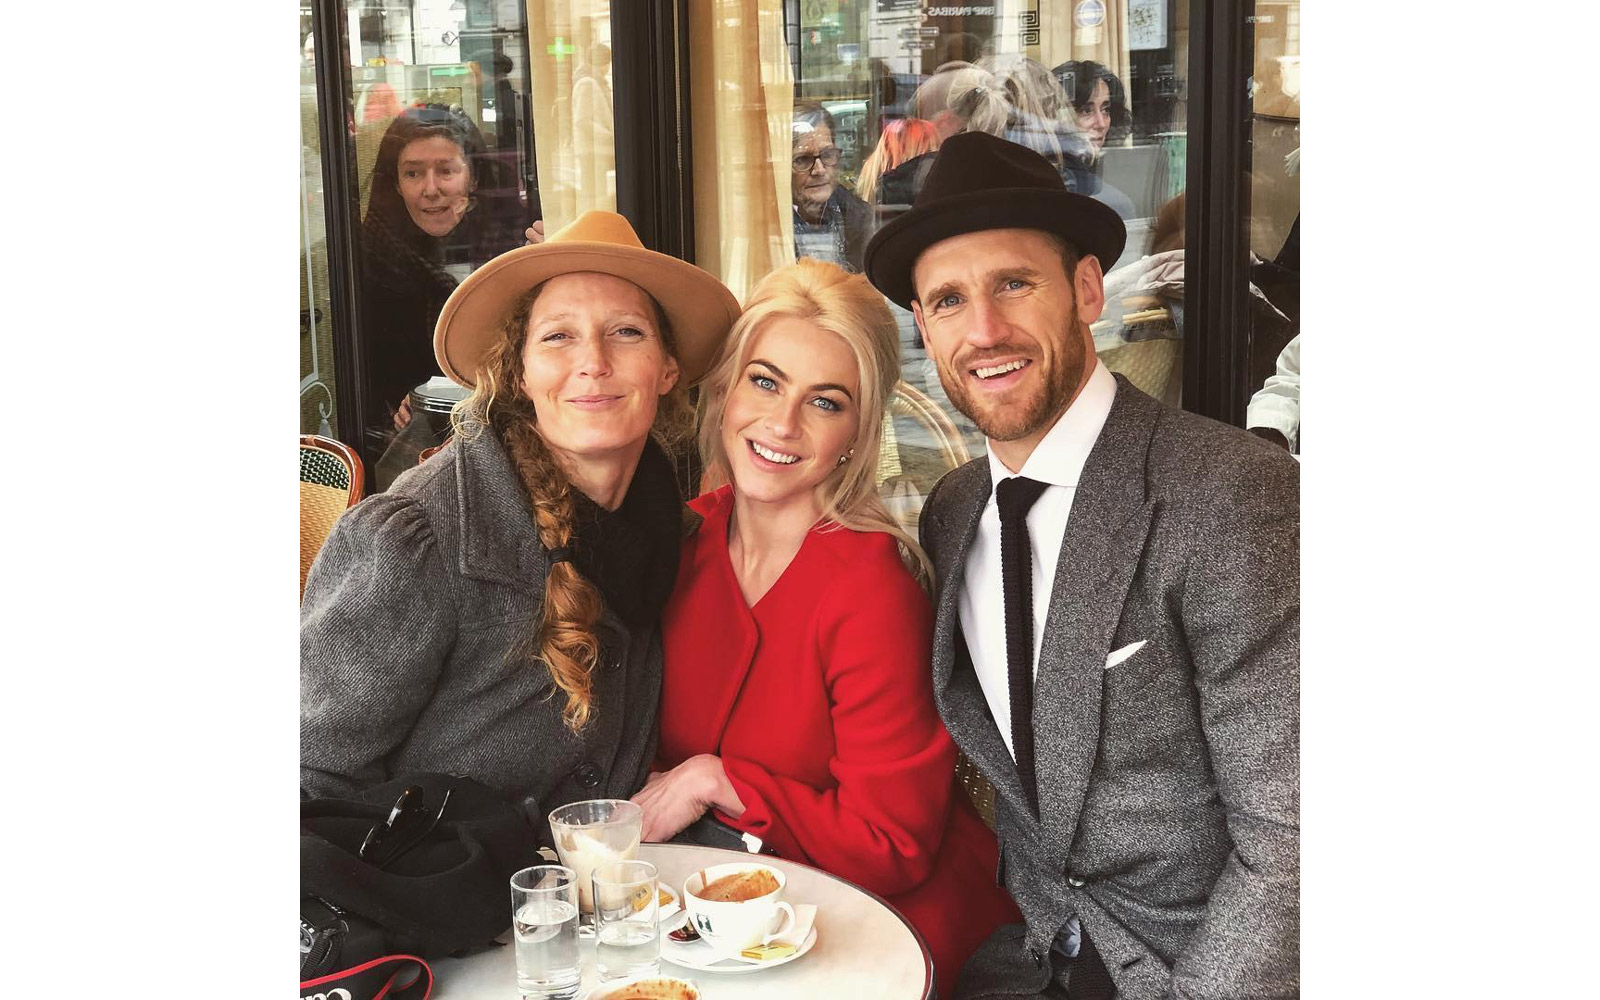 Julianne Hough and Brooks Laich with their photographer Sarah Falugo